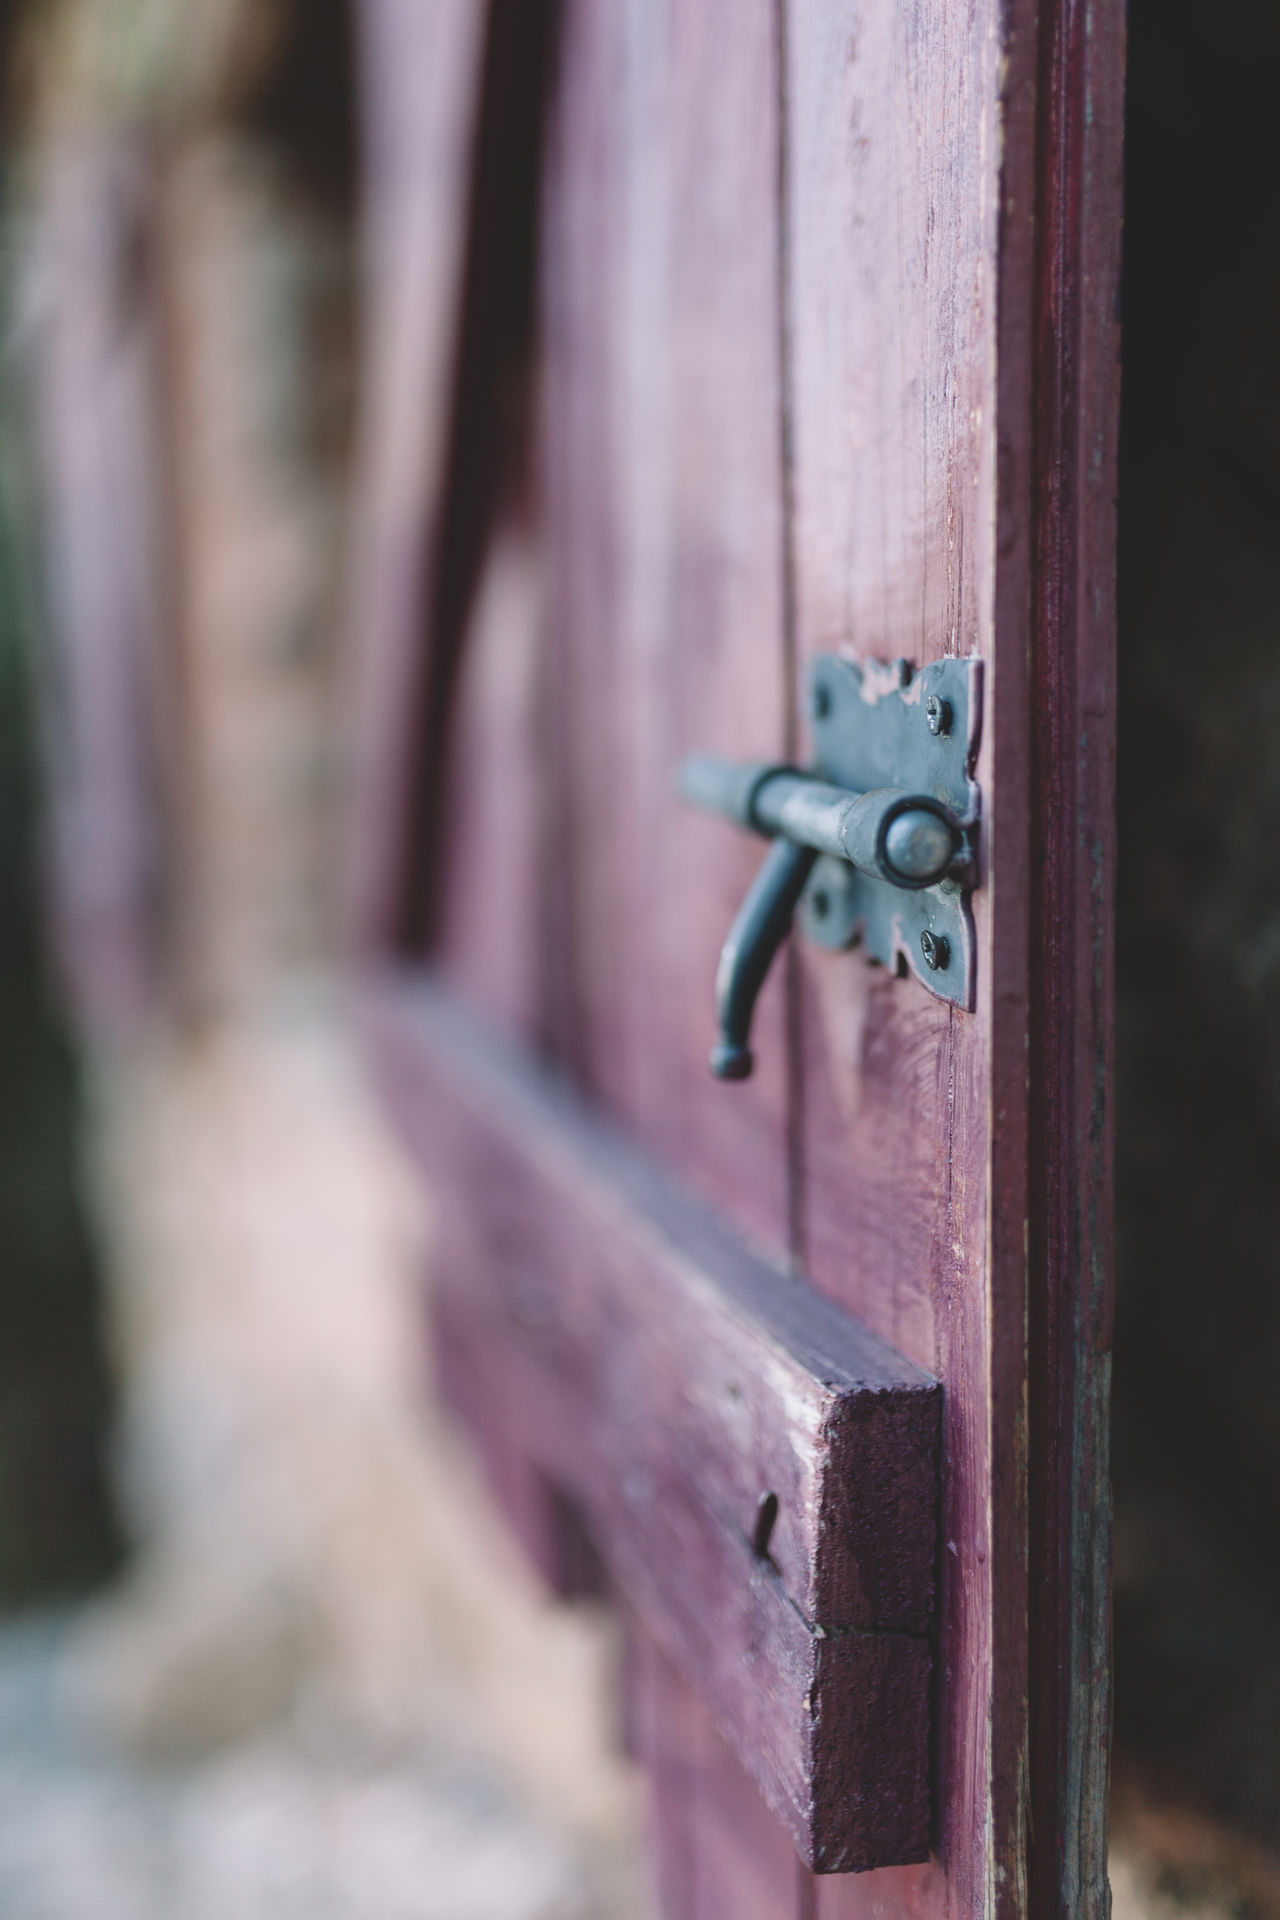 Close-up Day Door Key Latch Lock Metal No People Outdoors Protection Safety Security Window Wood Wood - Material